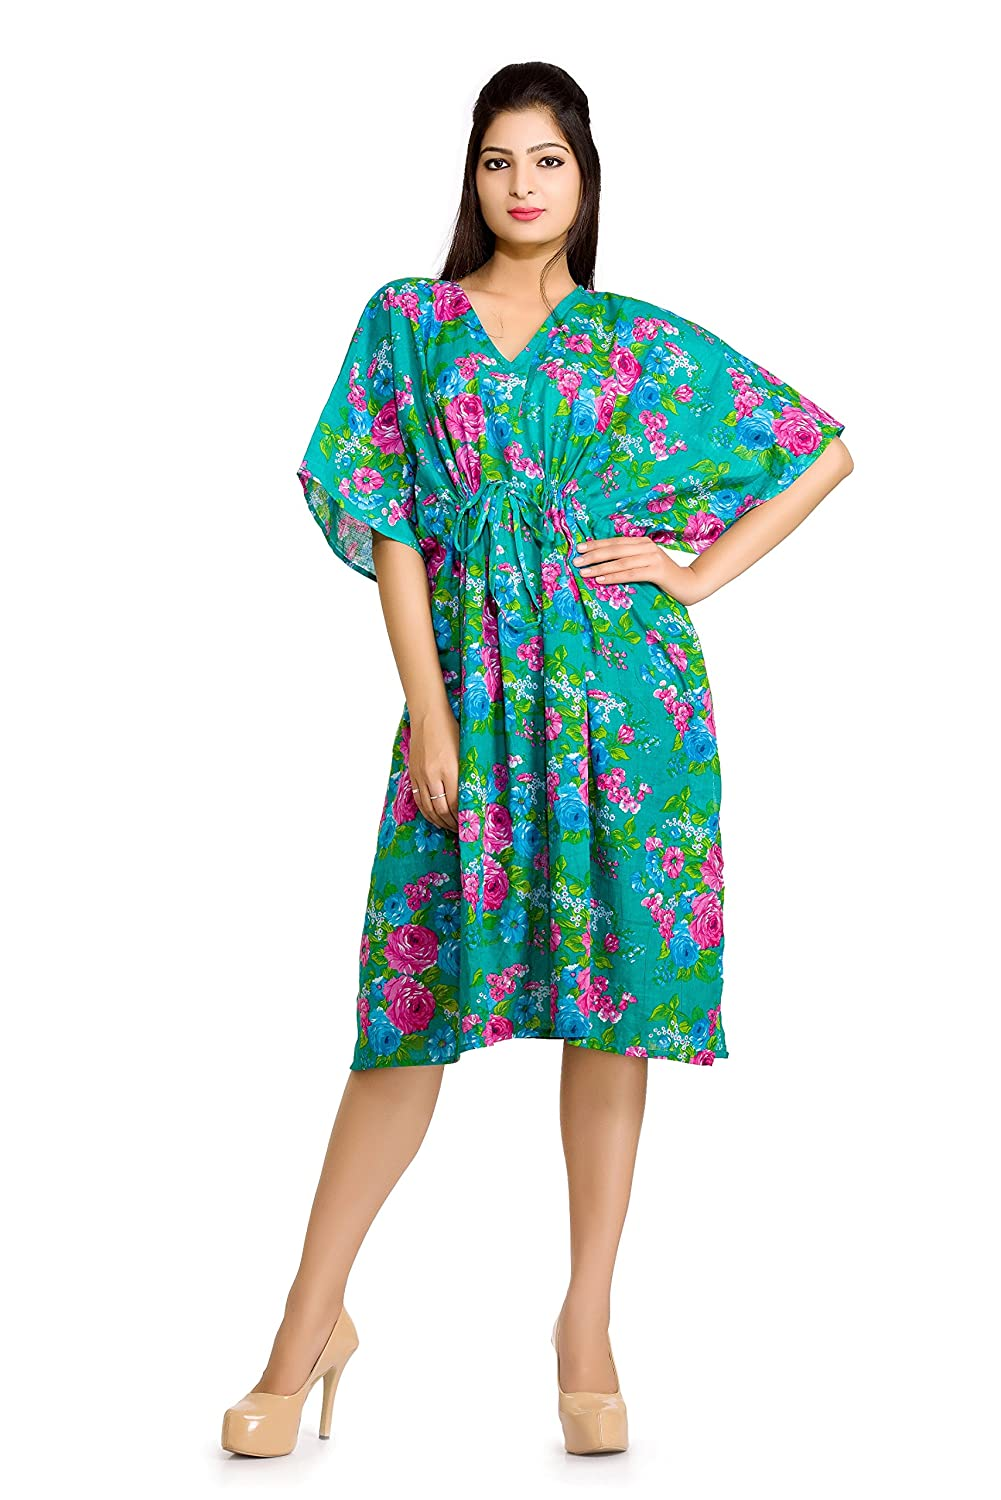 4daed64a967 cotton short caftan nightwear short cover up green floral printed maxi  short sexy maternity gown women s